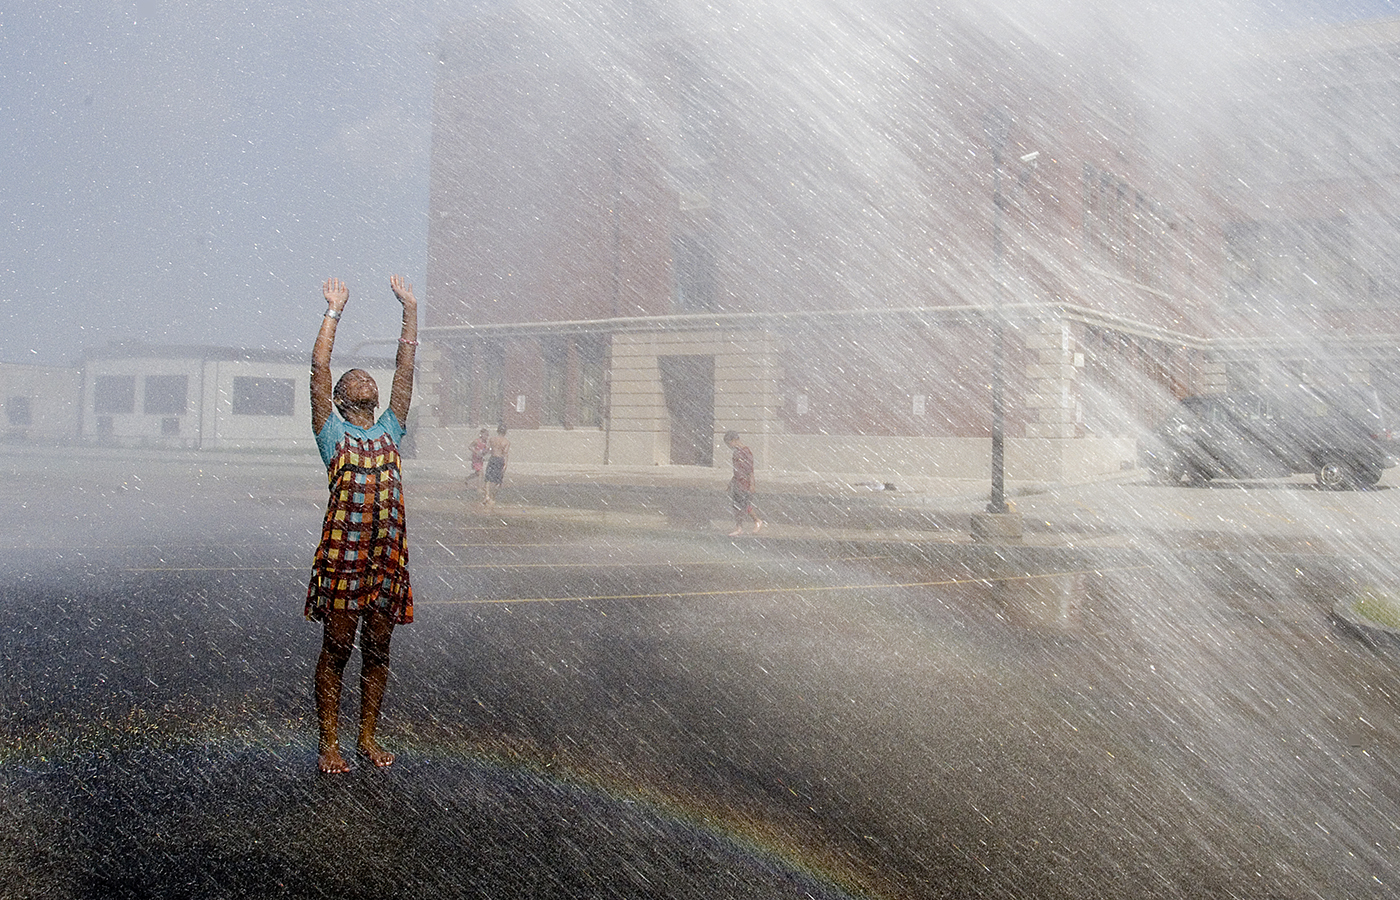 Ajanee Mohammed, 11, of Rochester, cool off in the spray from an open fire hydrant at School 41 on Ridge Road. The city opened hydrants and spray parks across the city to help residents cool off on a hot day. (staff photo by Jeffrey Blackwell)  (staff photo by Jeffrey Blackwell)